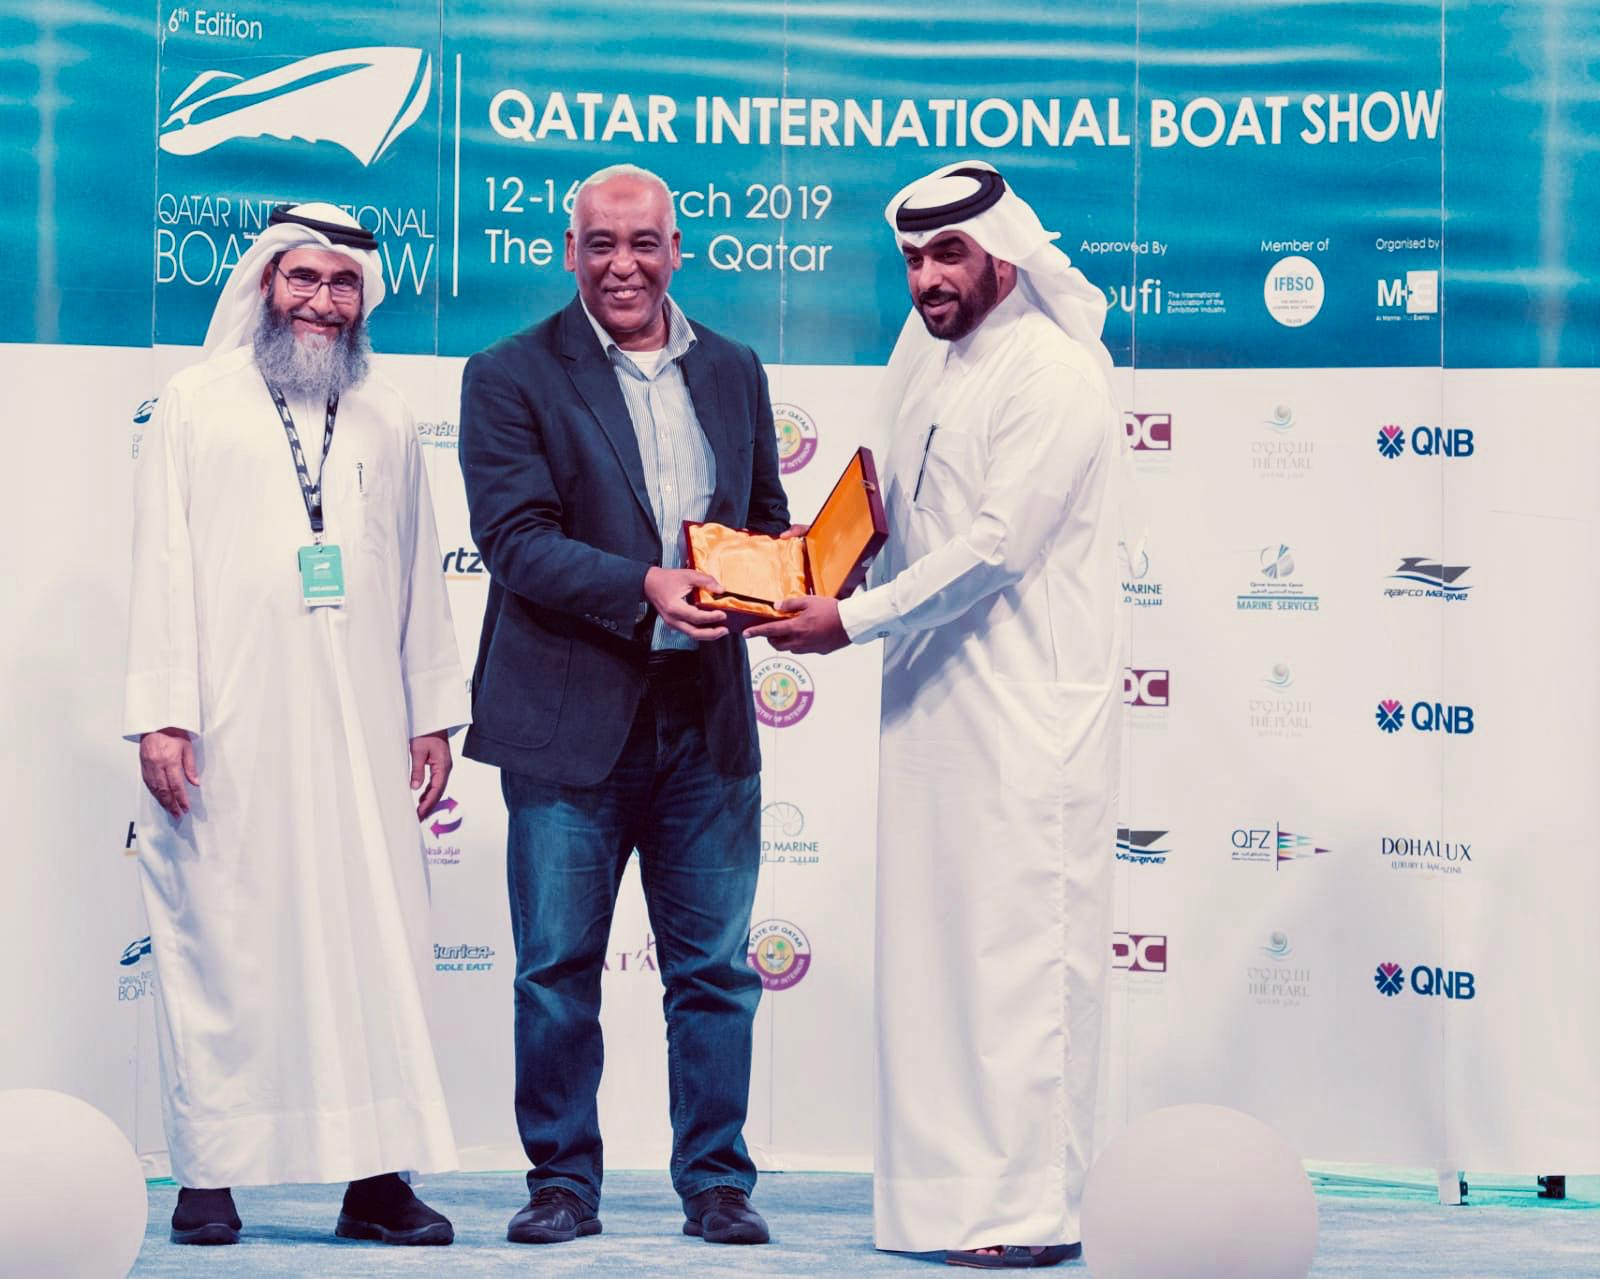 QIBS awards QIG Marine Services for being the official forwarding partner of 2019 edition